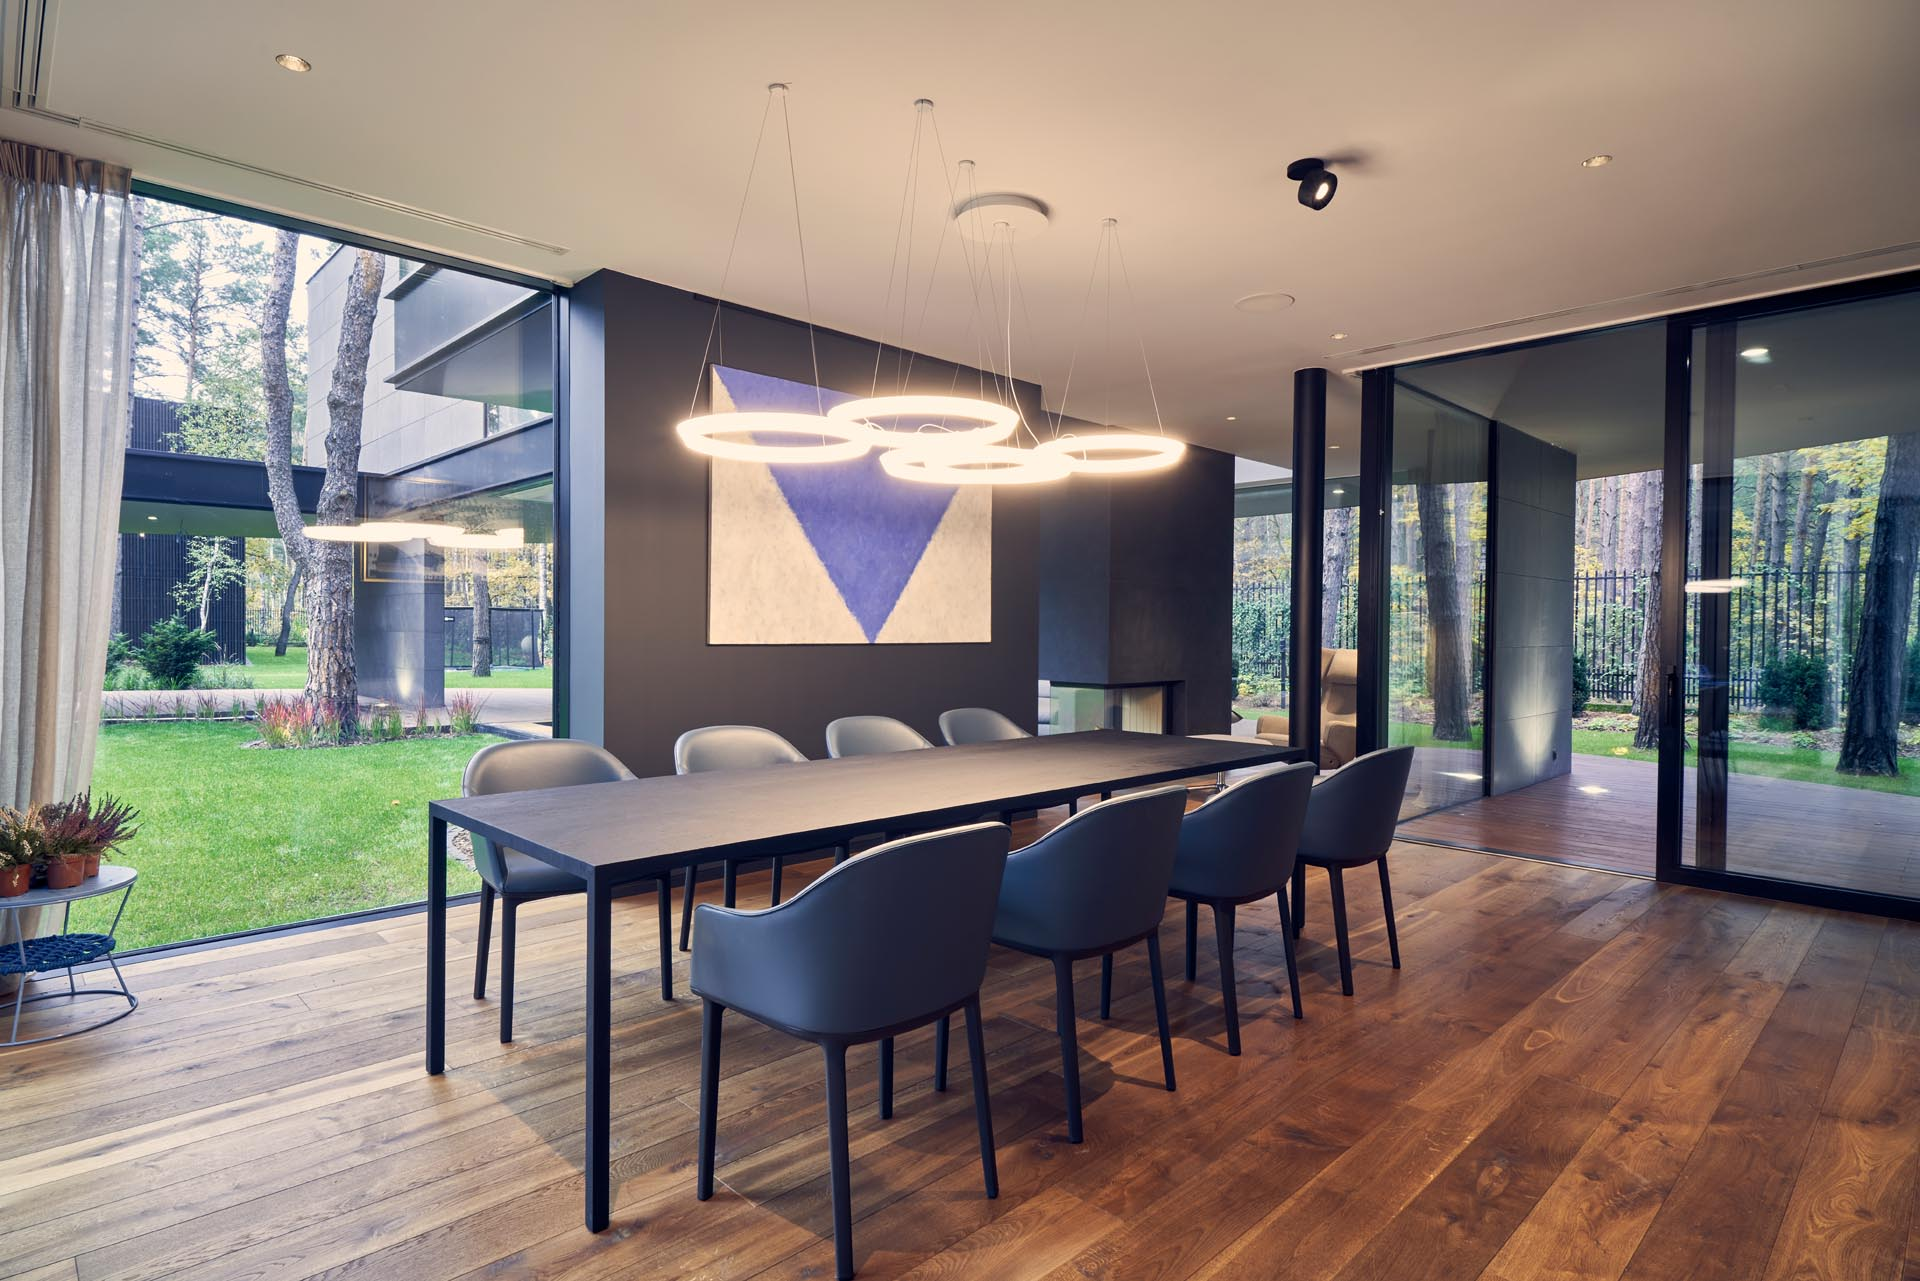 A modern dining room with floor-to-ceiling windows and warm wood floors.